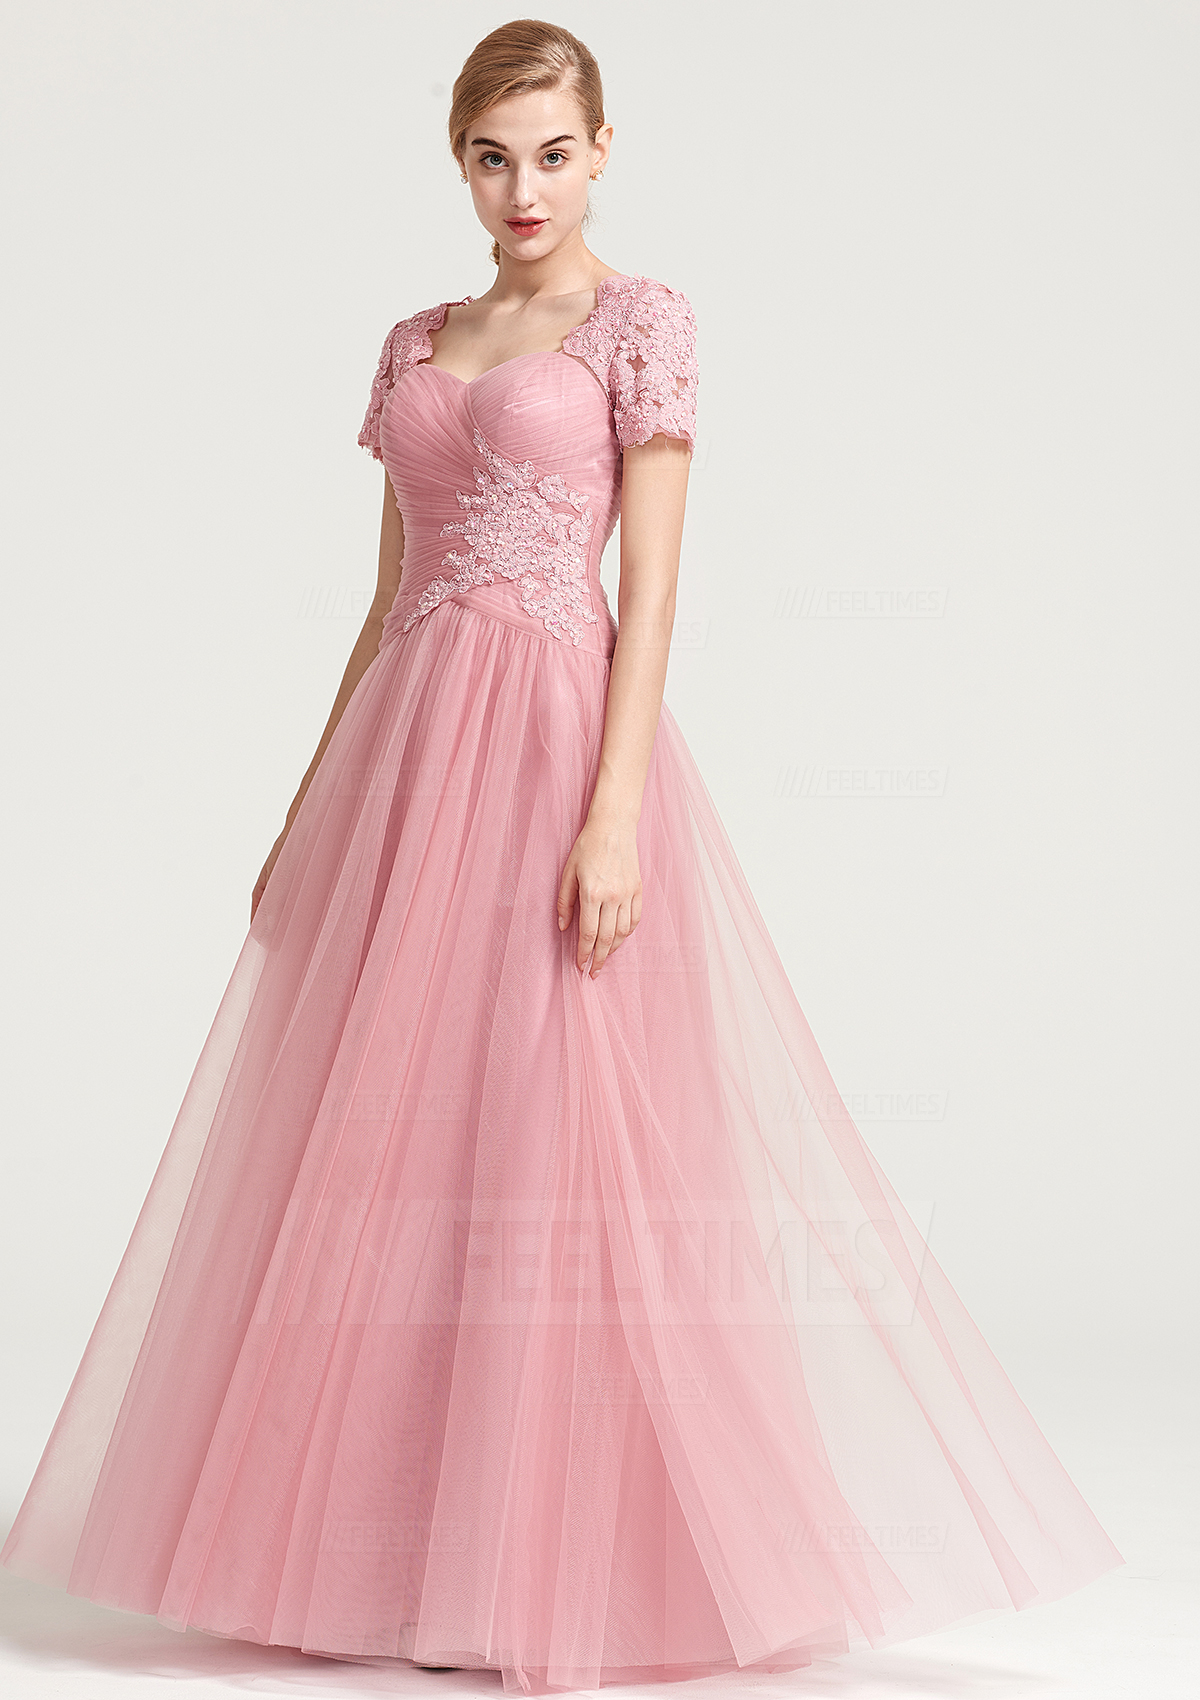 046291ae6450 A-Line/Princess Sweetheart Short Sleeve Long/Floor-Length Tulle Prom Dress  With Appliqued Pleated